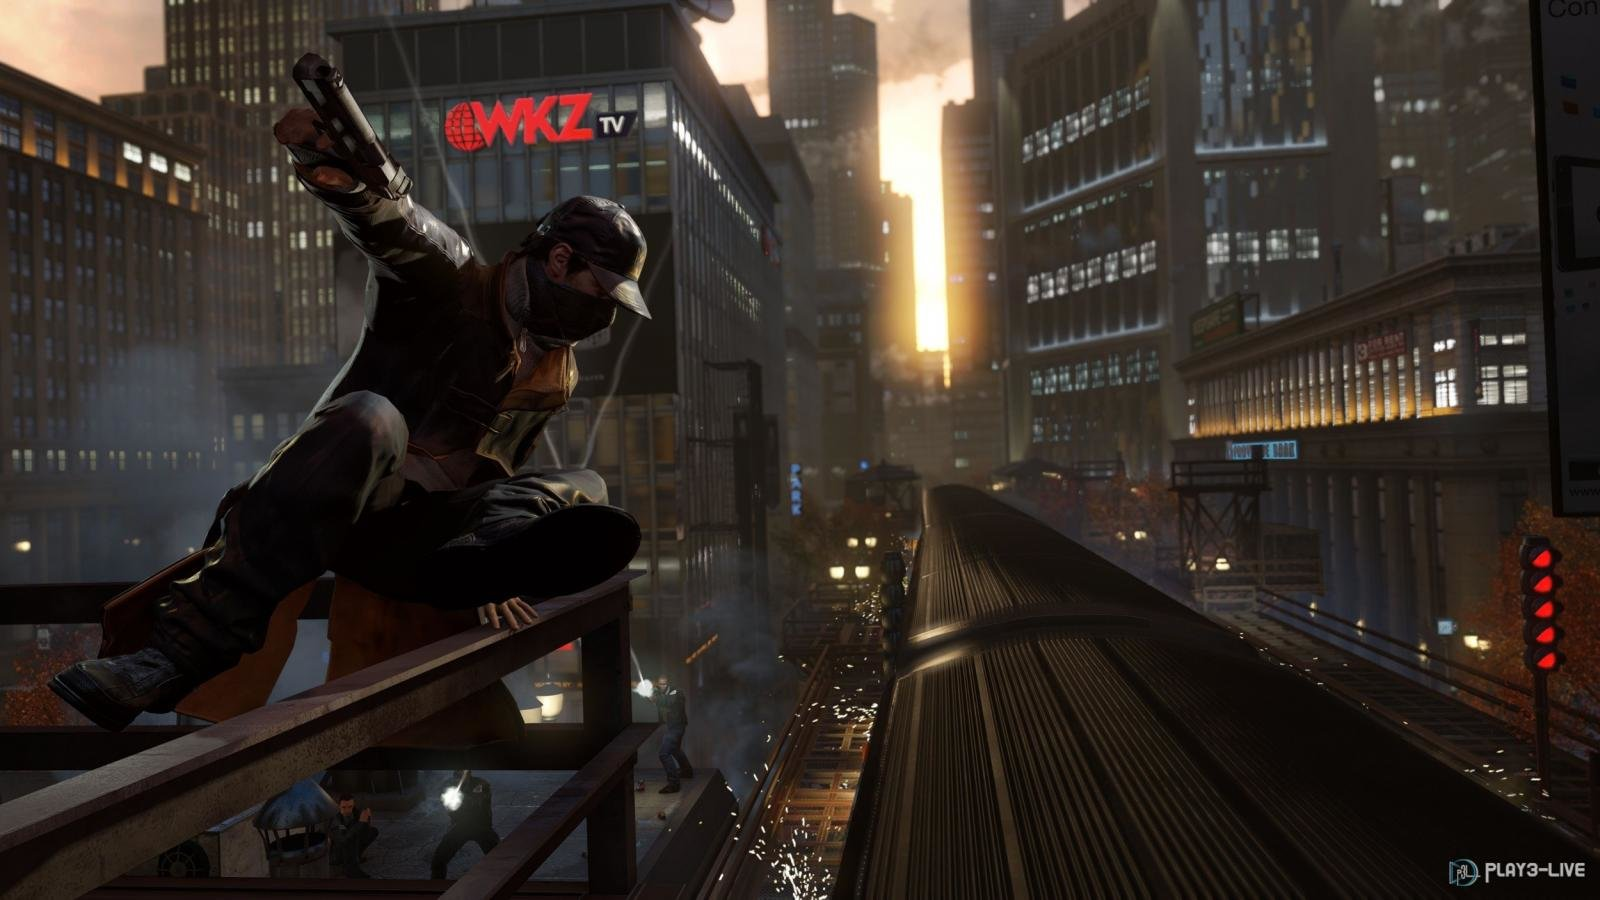 Free Watch Dogs high quality wallpaper ID:117333 for hd 1600x900 computer